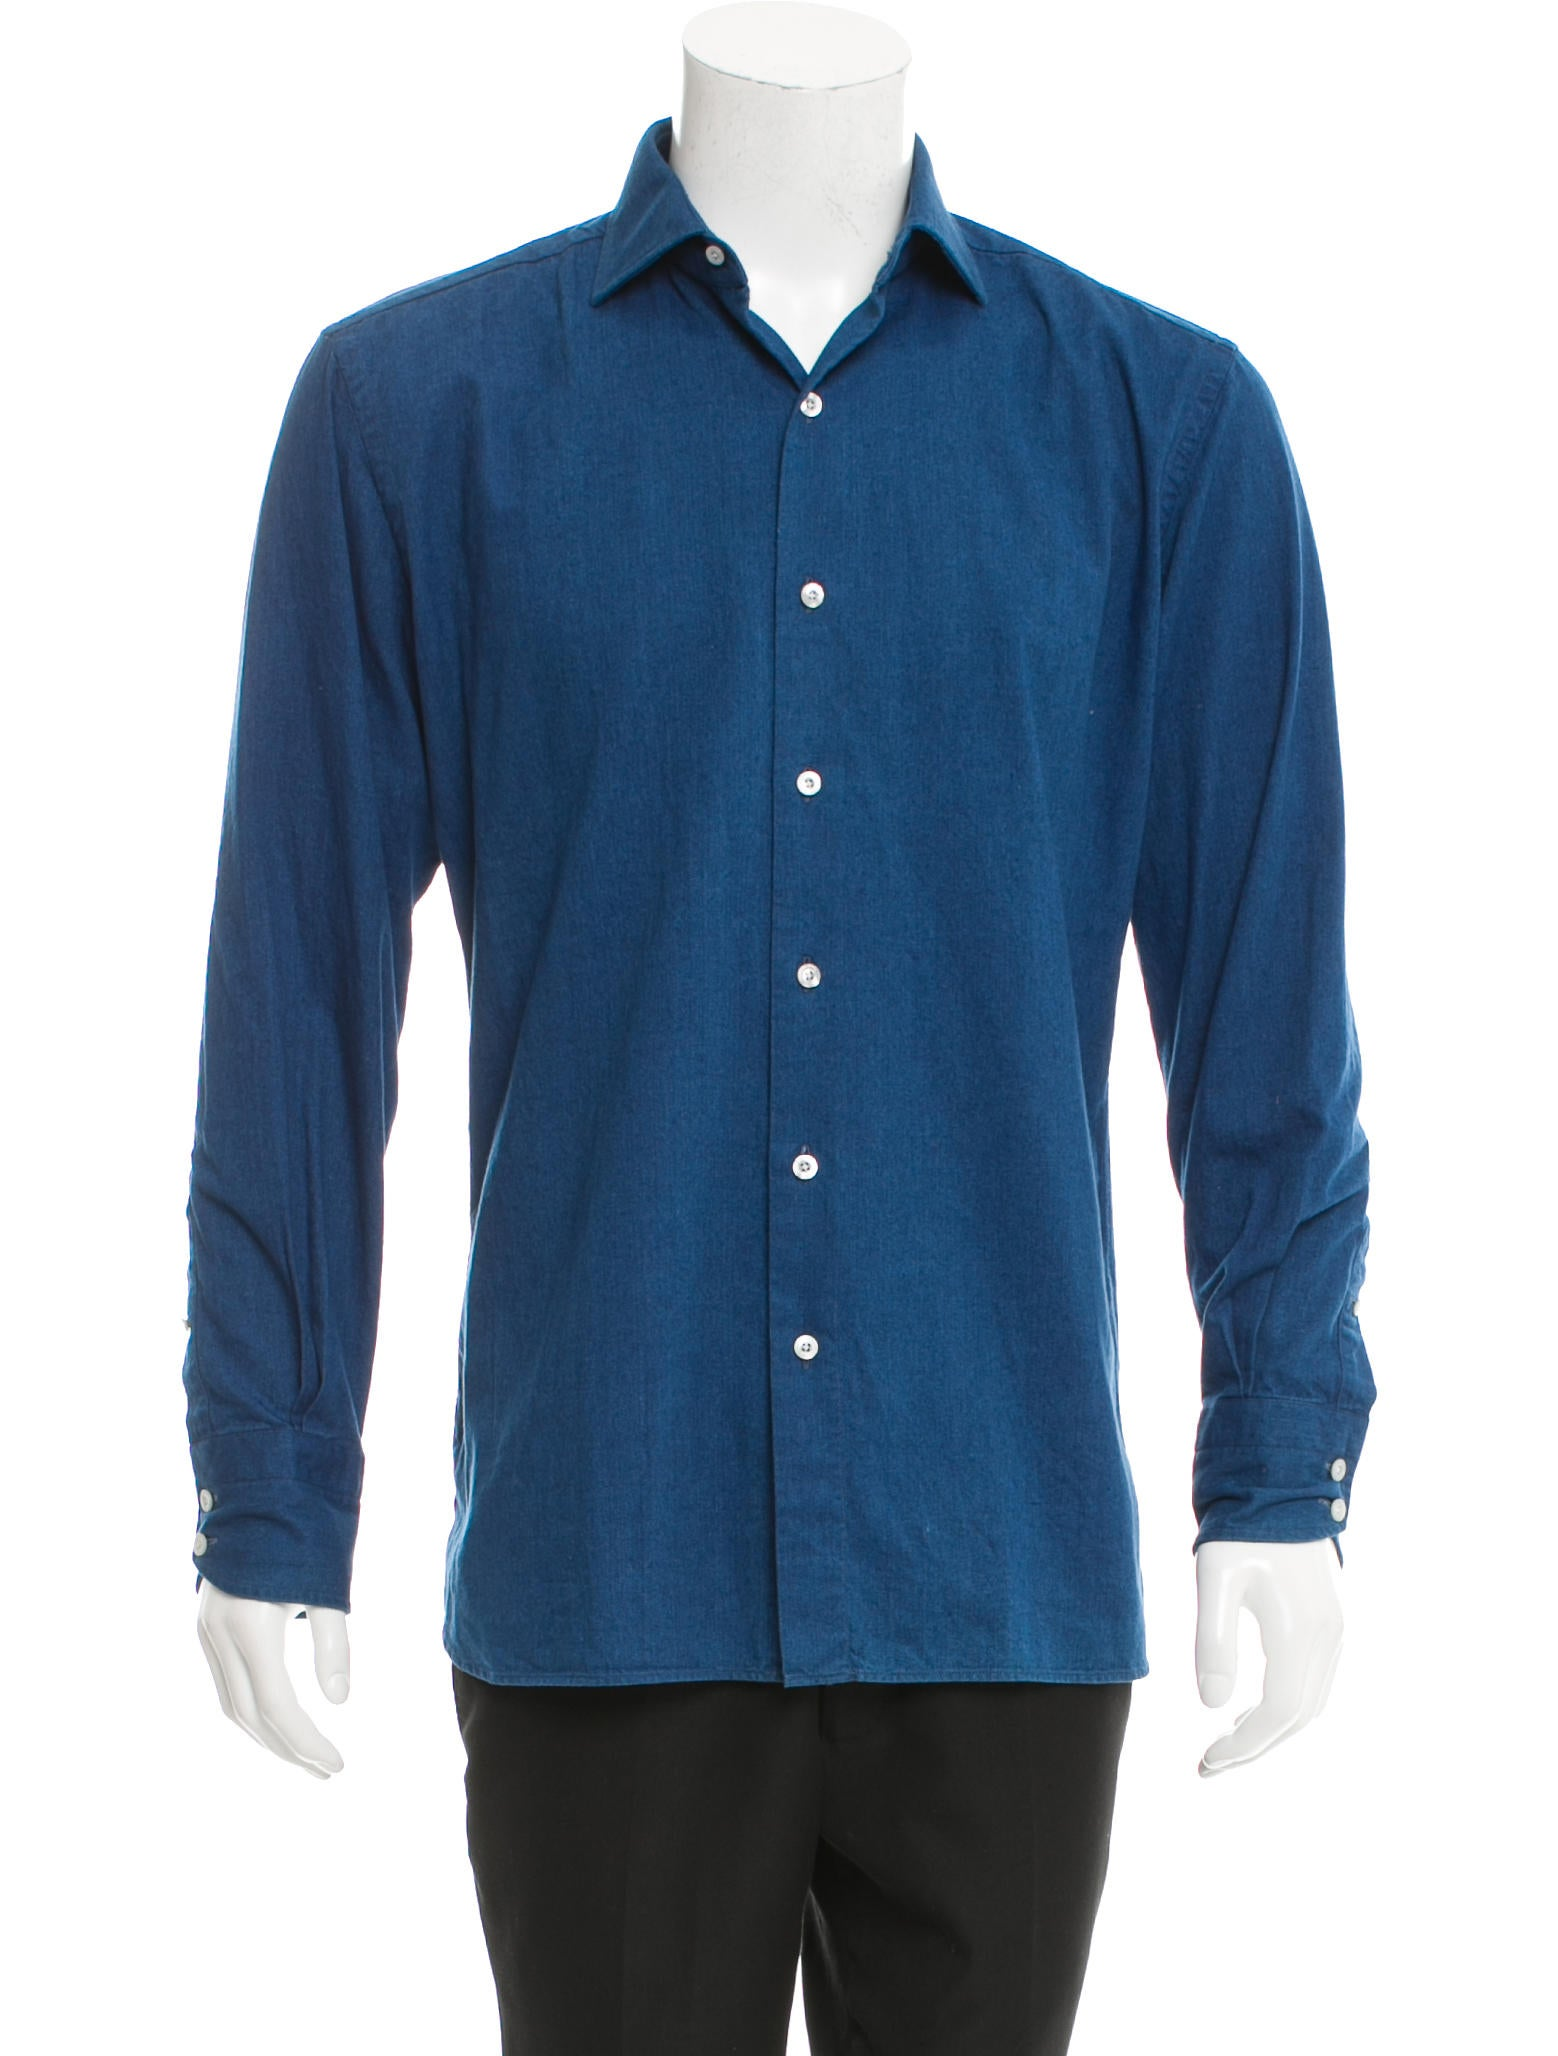 Tom ford woven button up shirt w tags clothing Woven t shirt tags